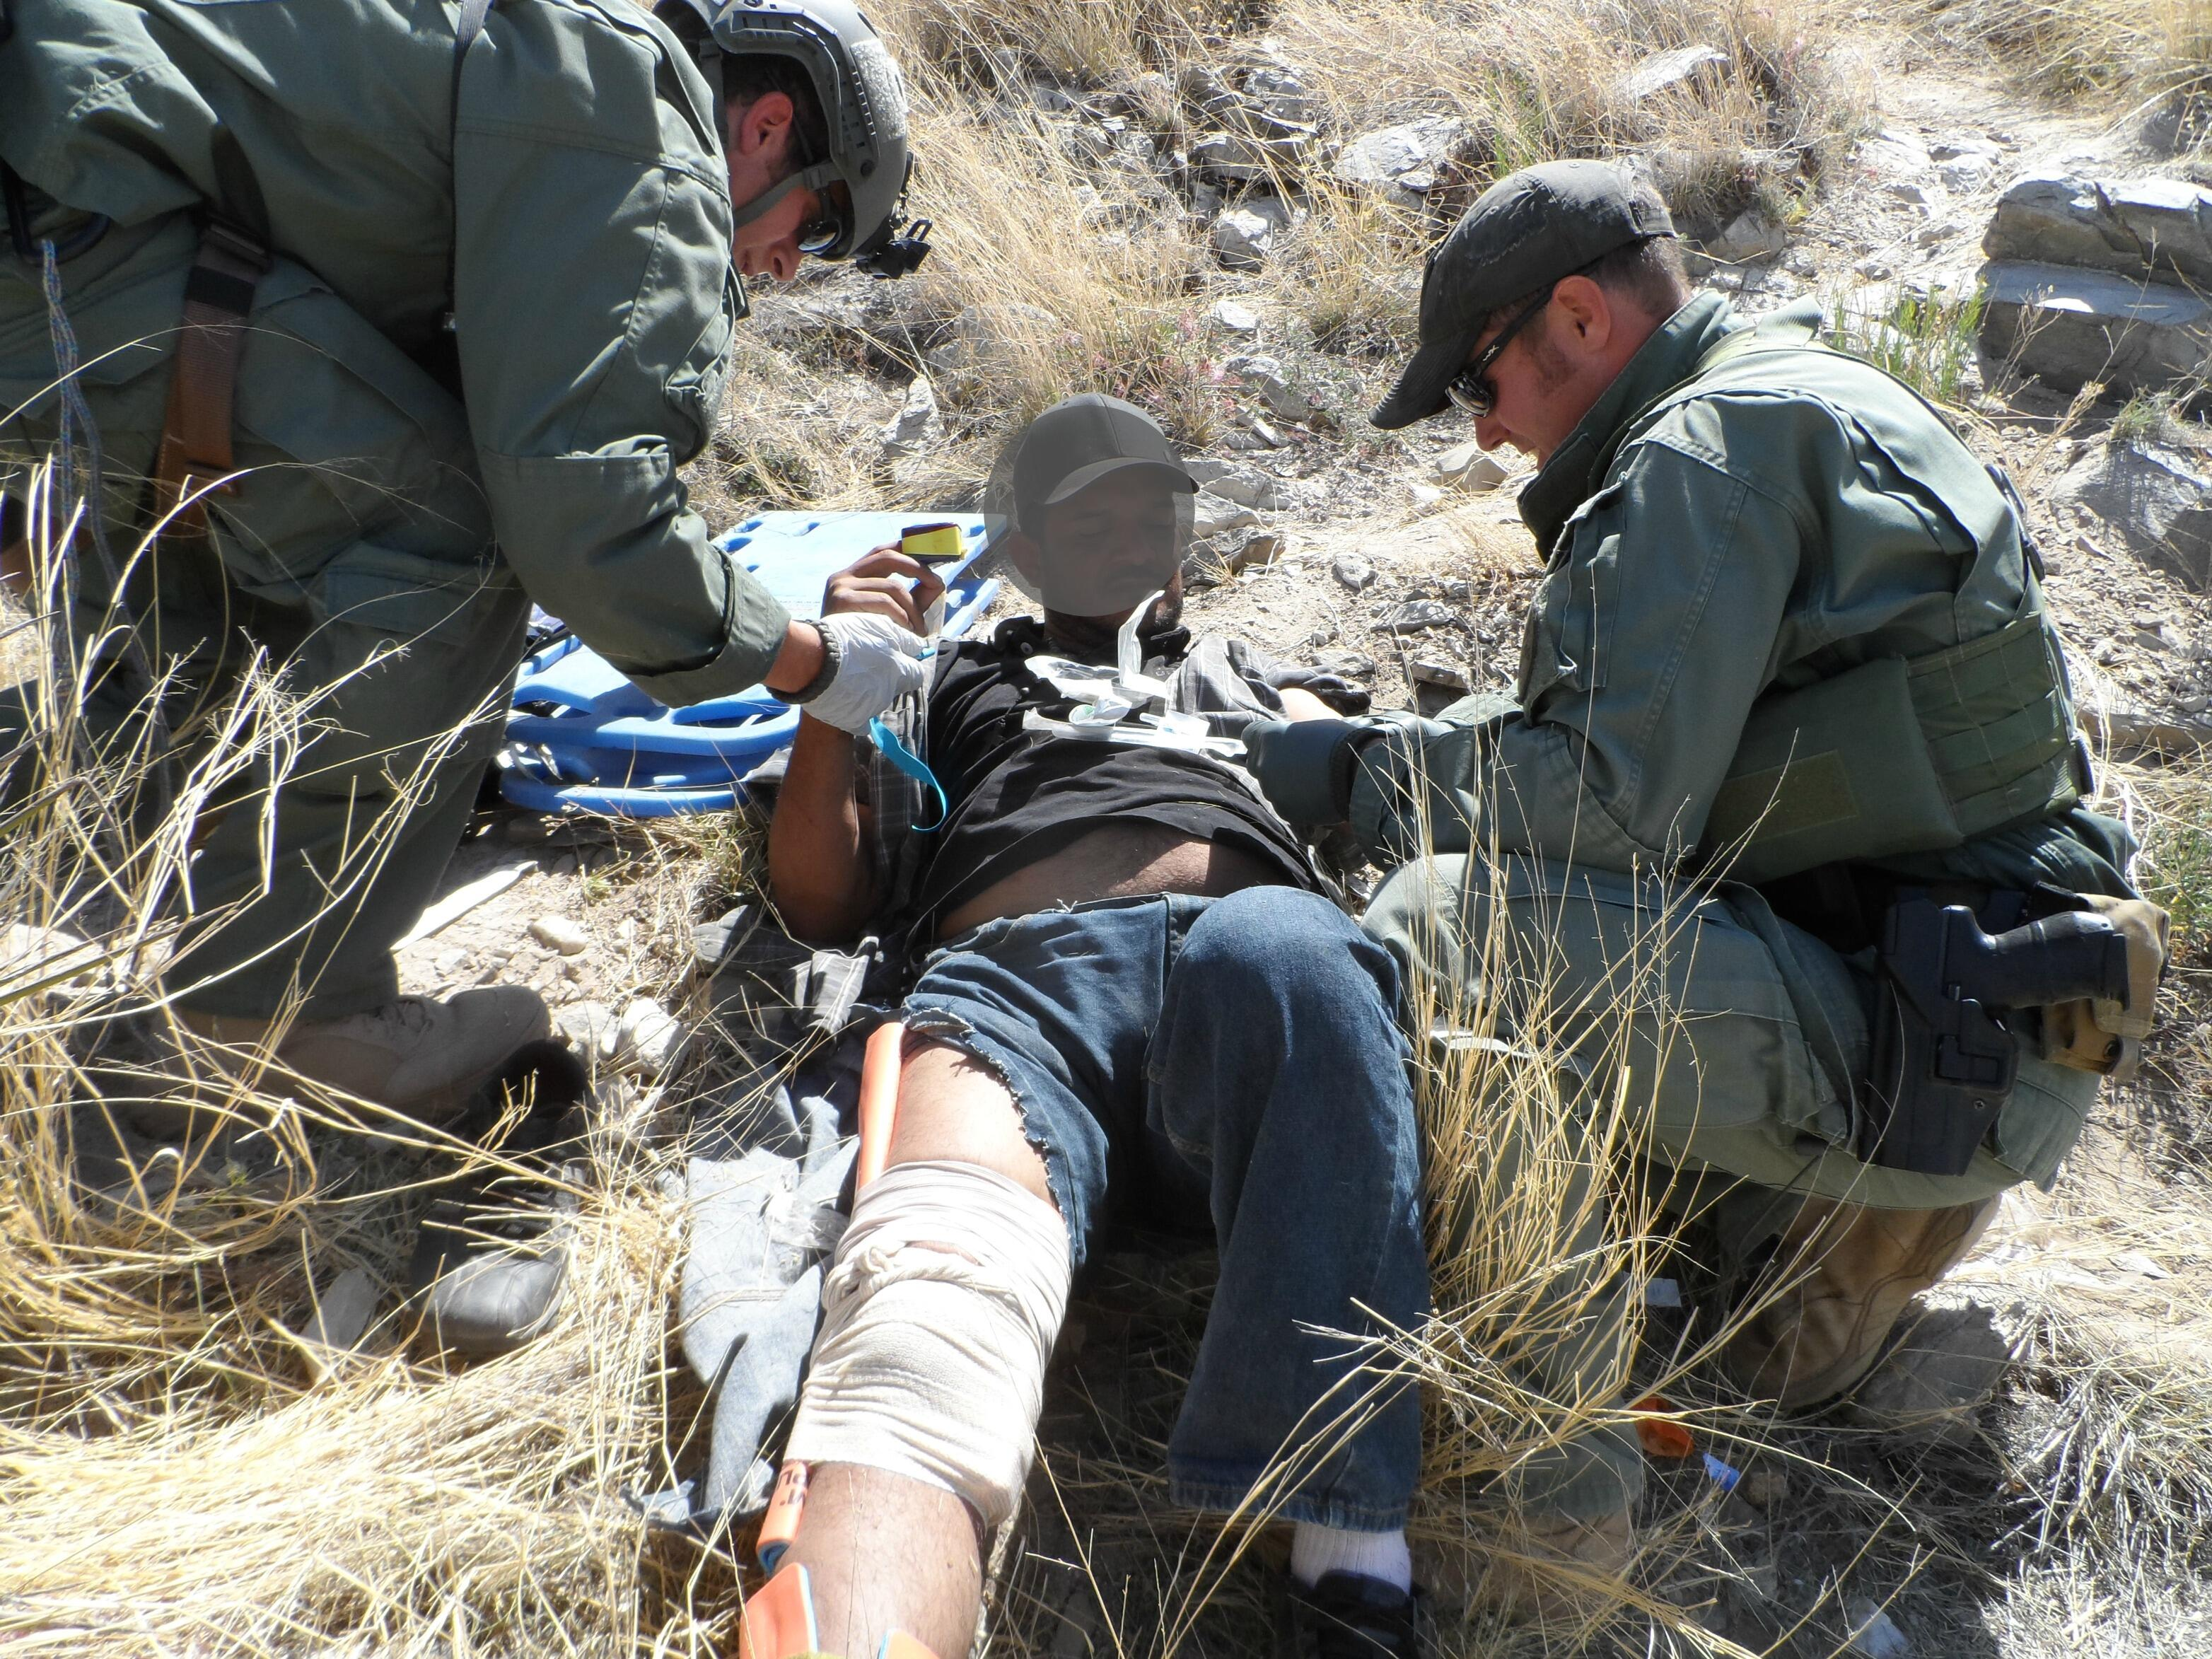 Border Patrol Search Trauma and Rescue (BORSTAR) team render first aid to an injured migrant.